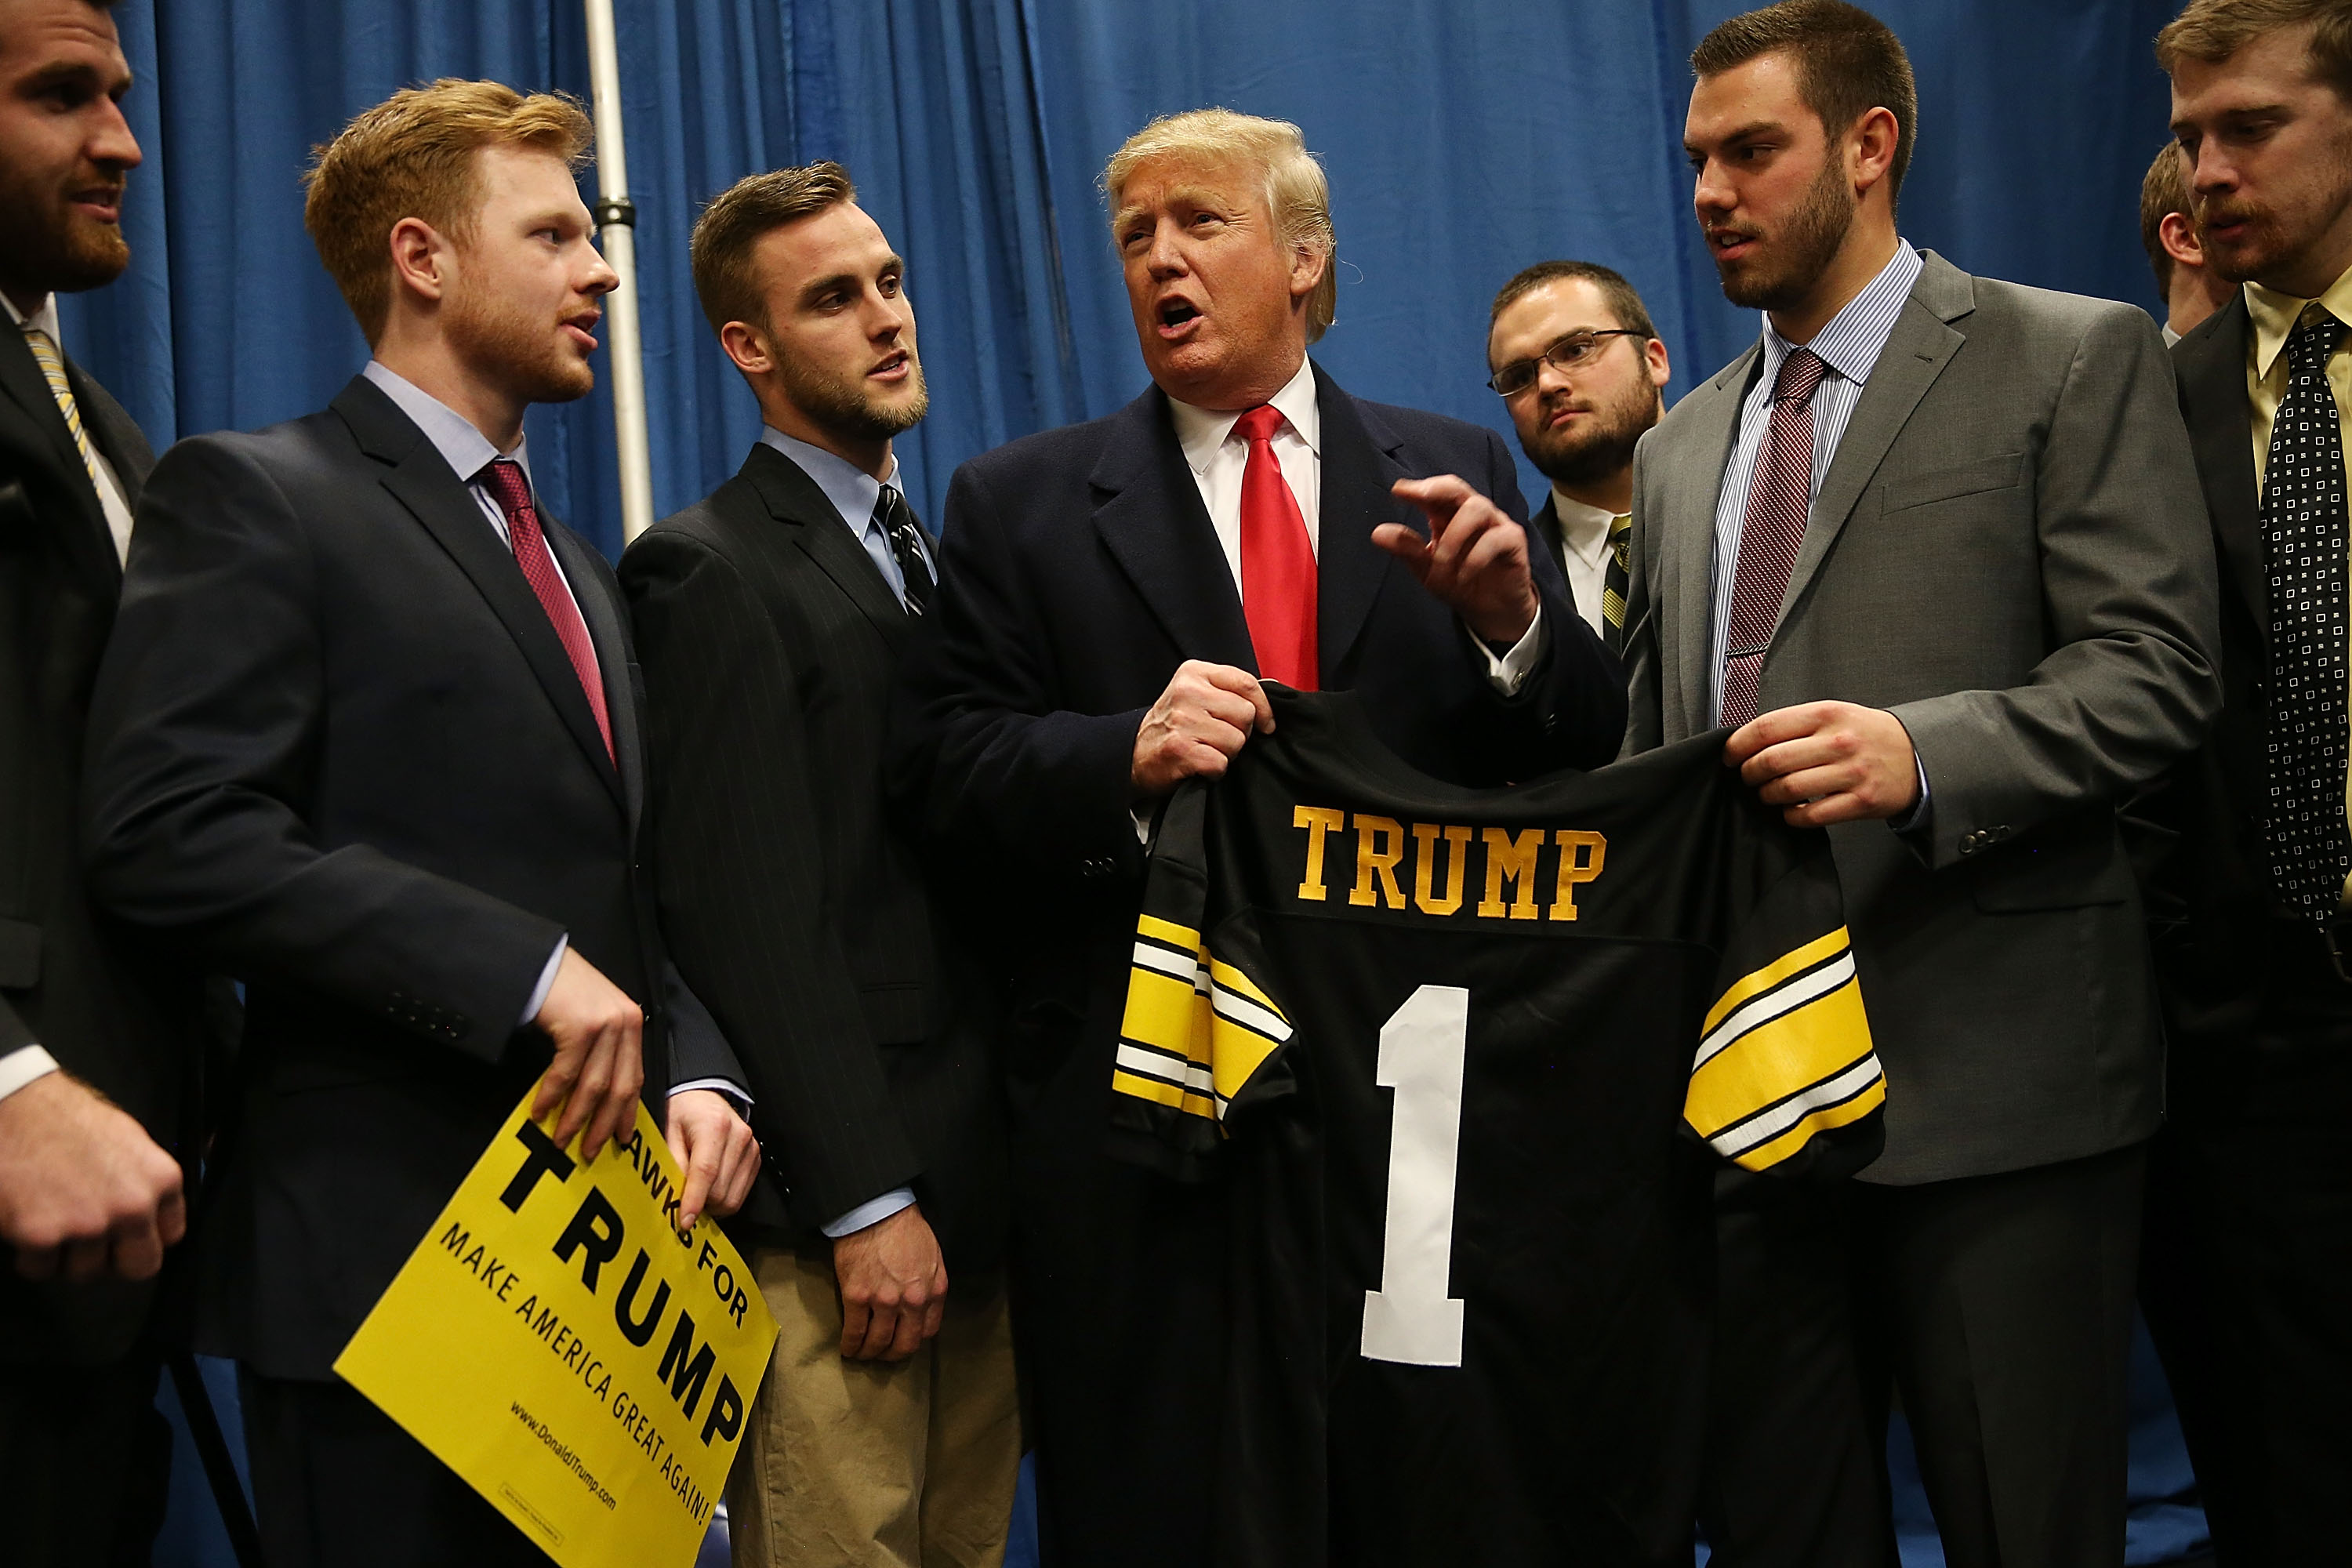 2016 presidential election just as divisive for nfl teams football images